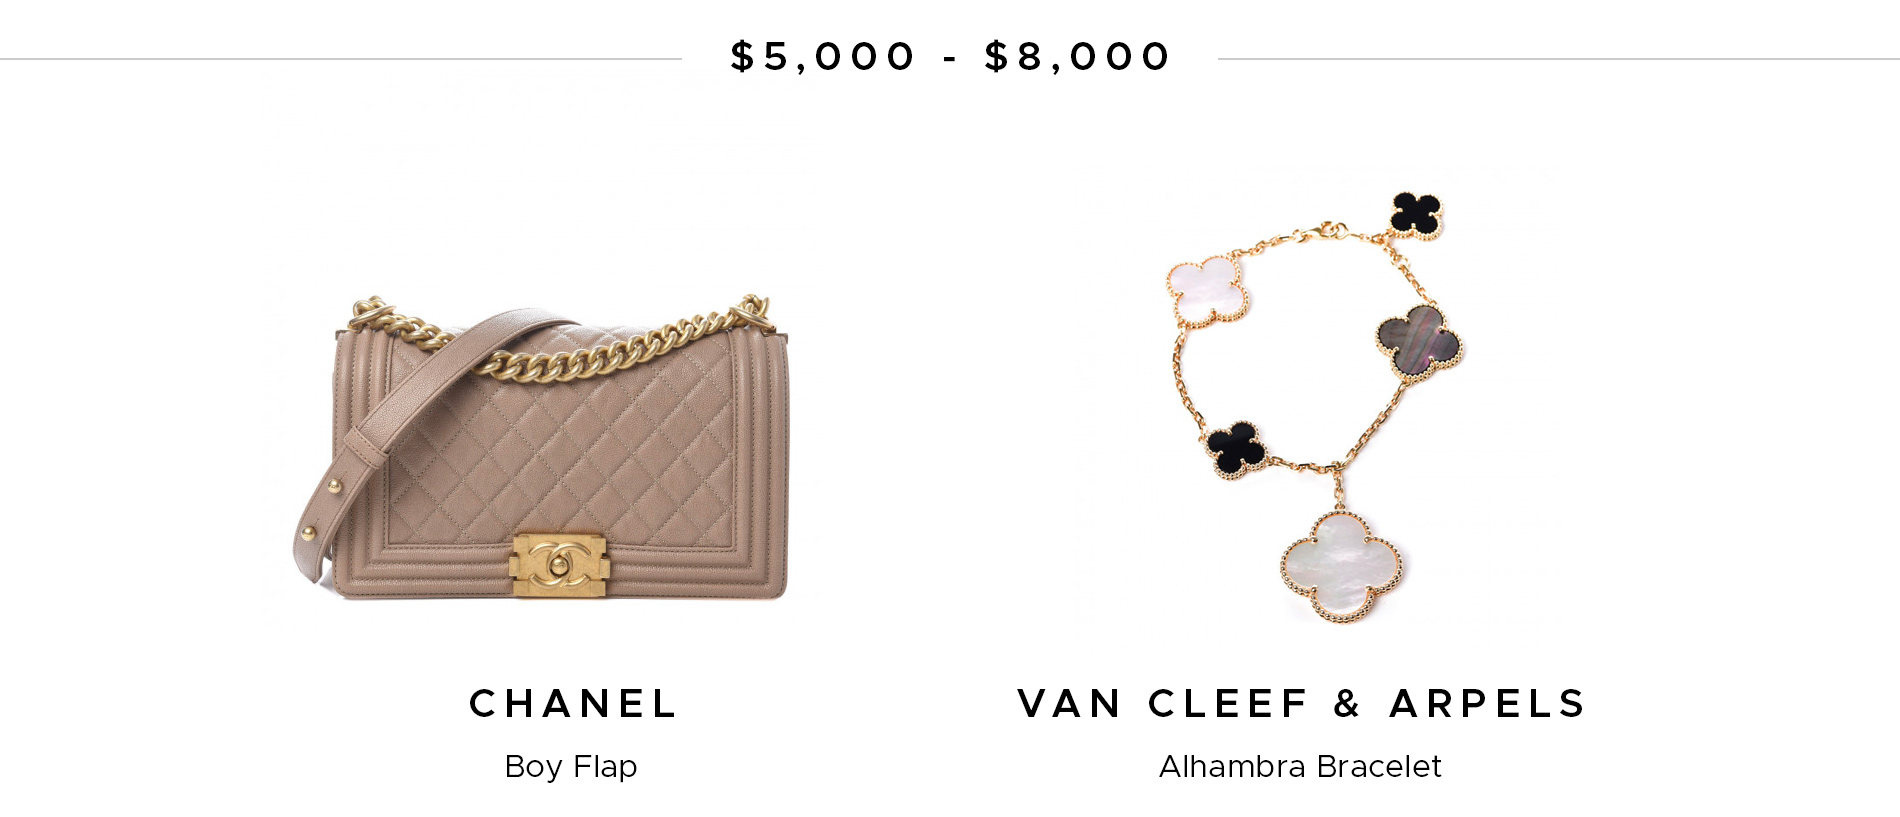 $5,000 - $8,000 Chanel Boy Flap and Van Cleef & Arpels